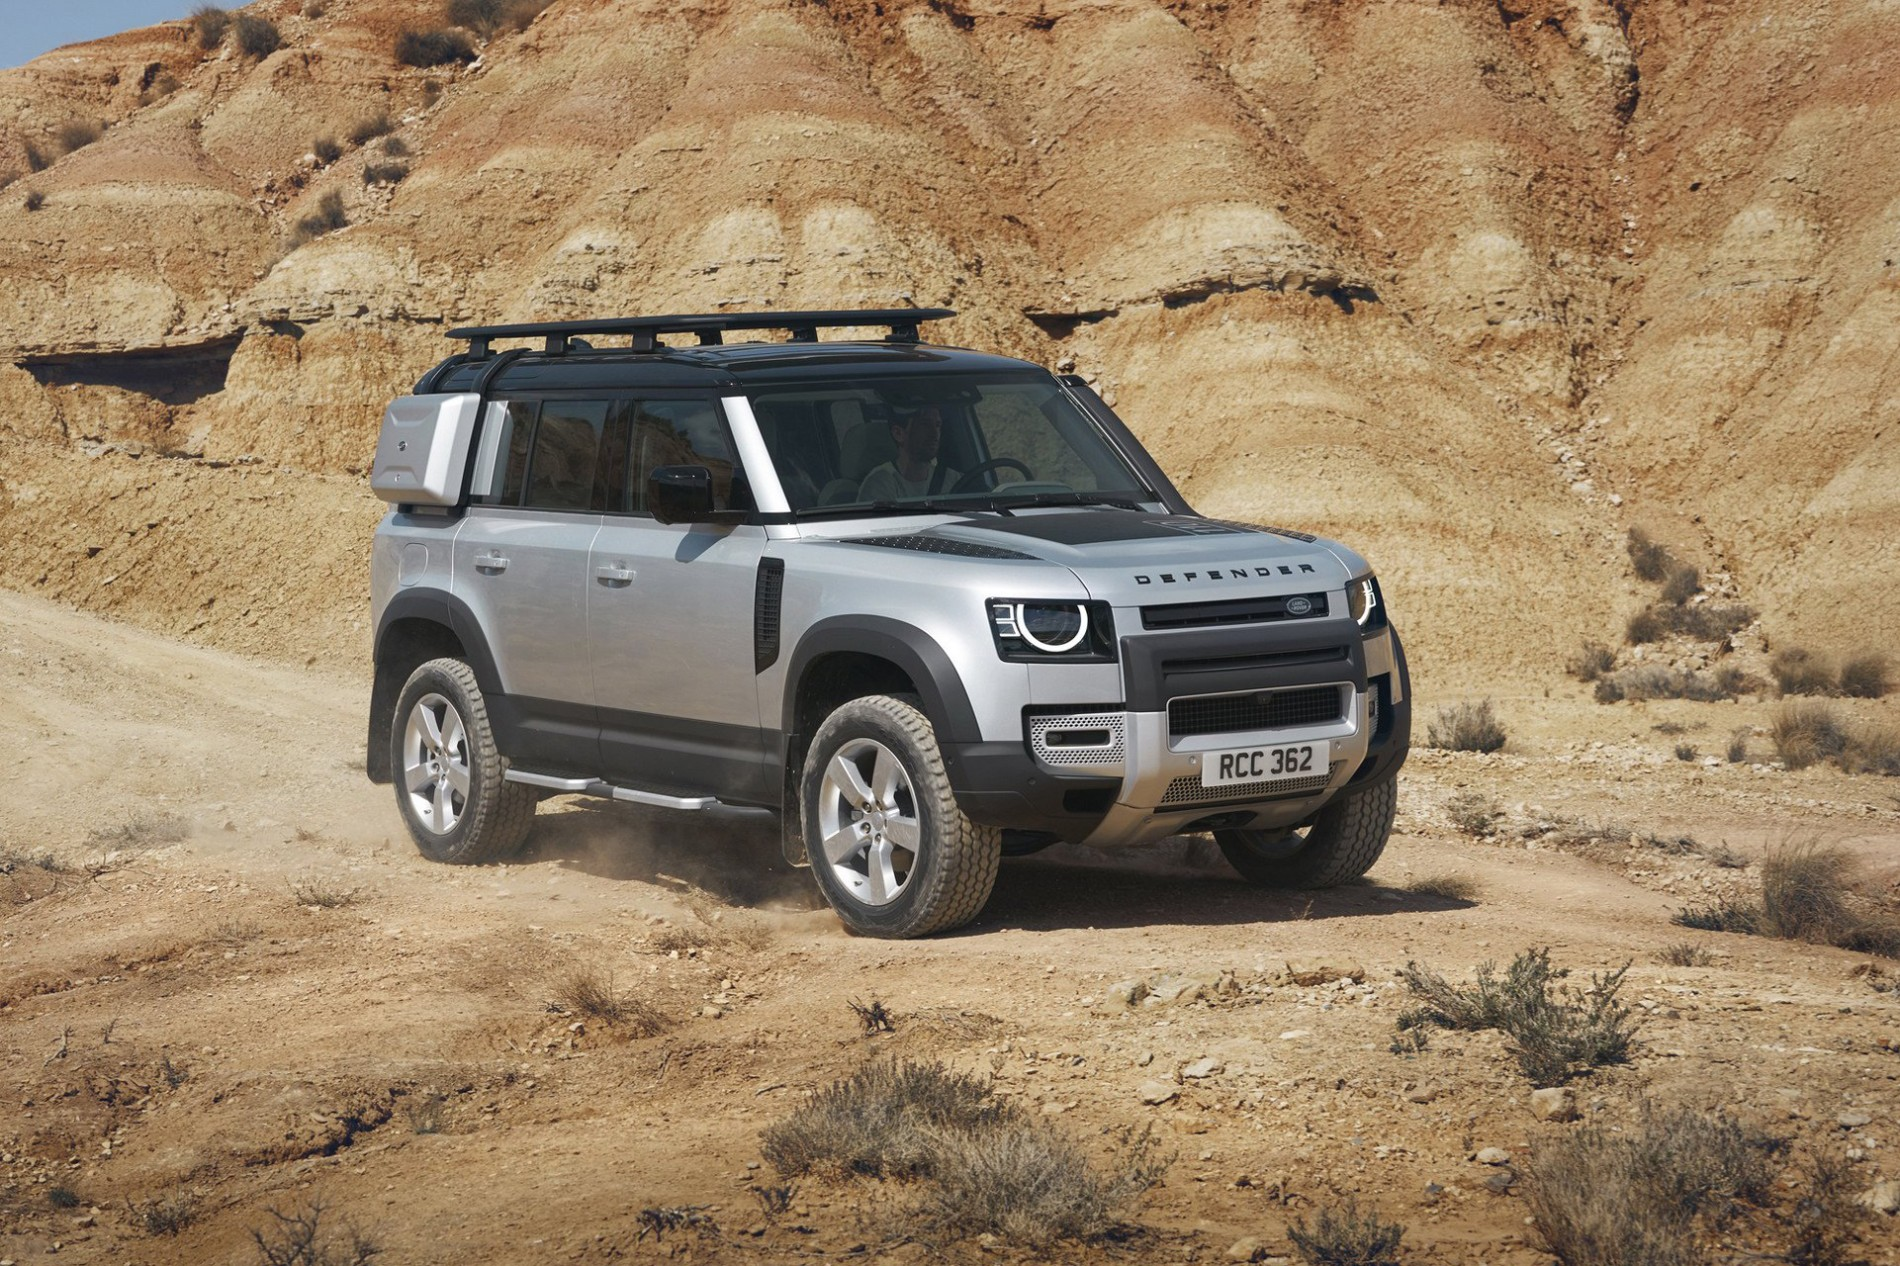 Land Rover Defender - Land Rover Defender